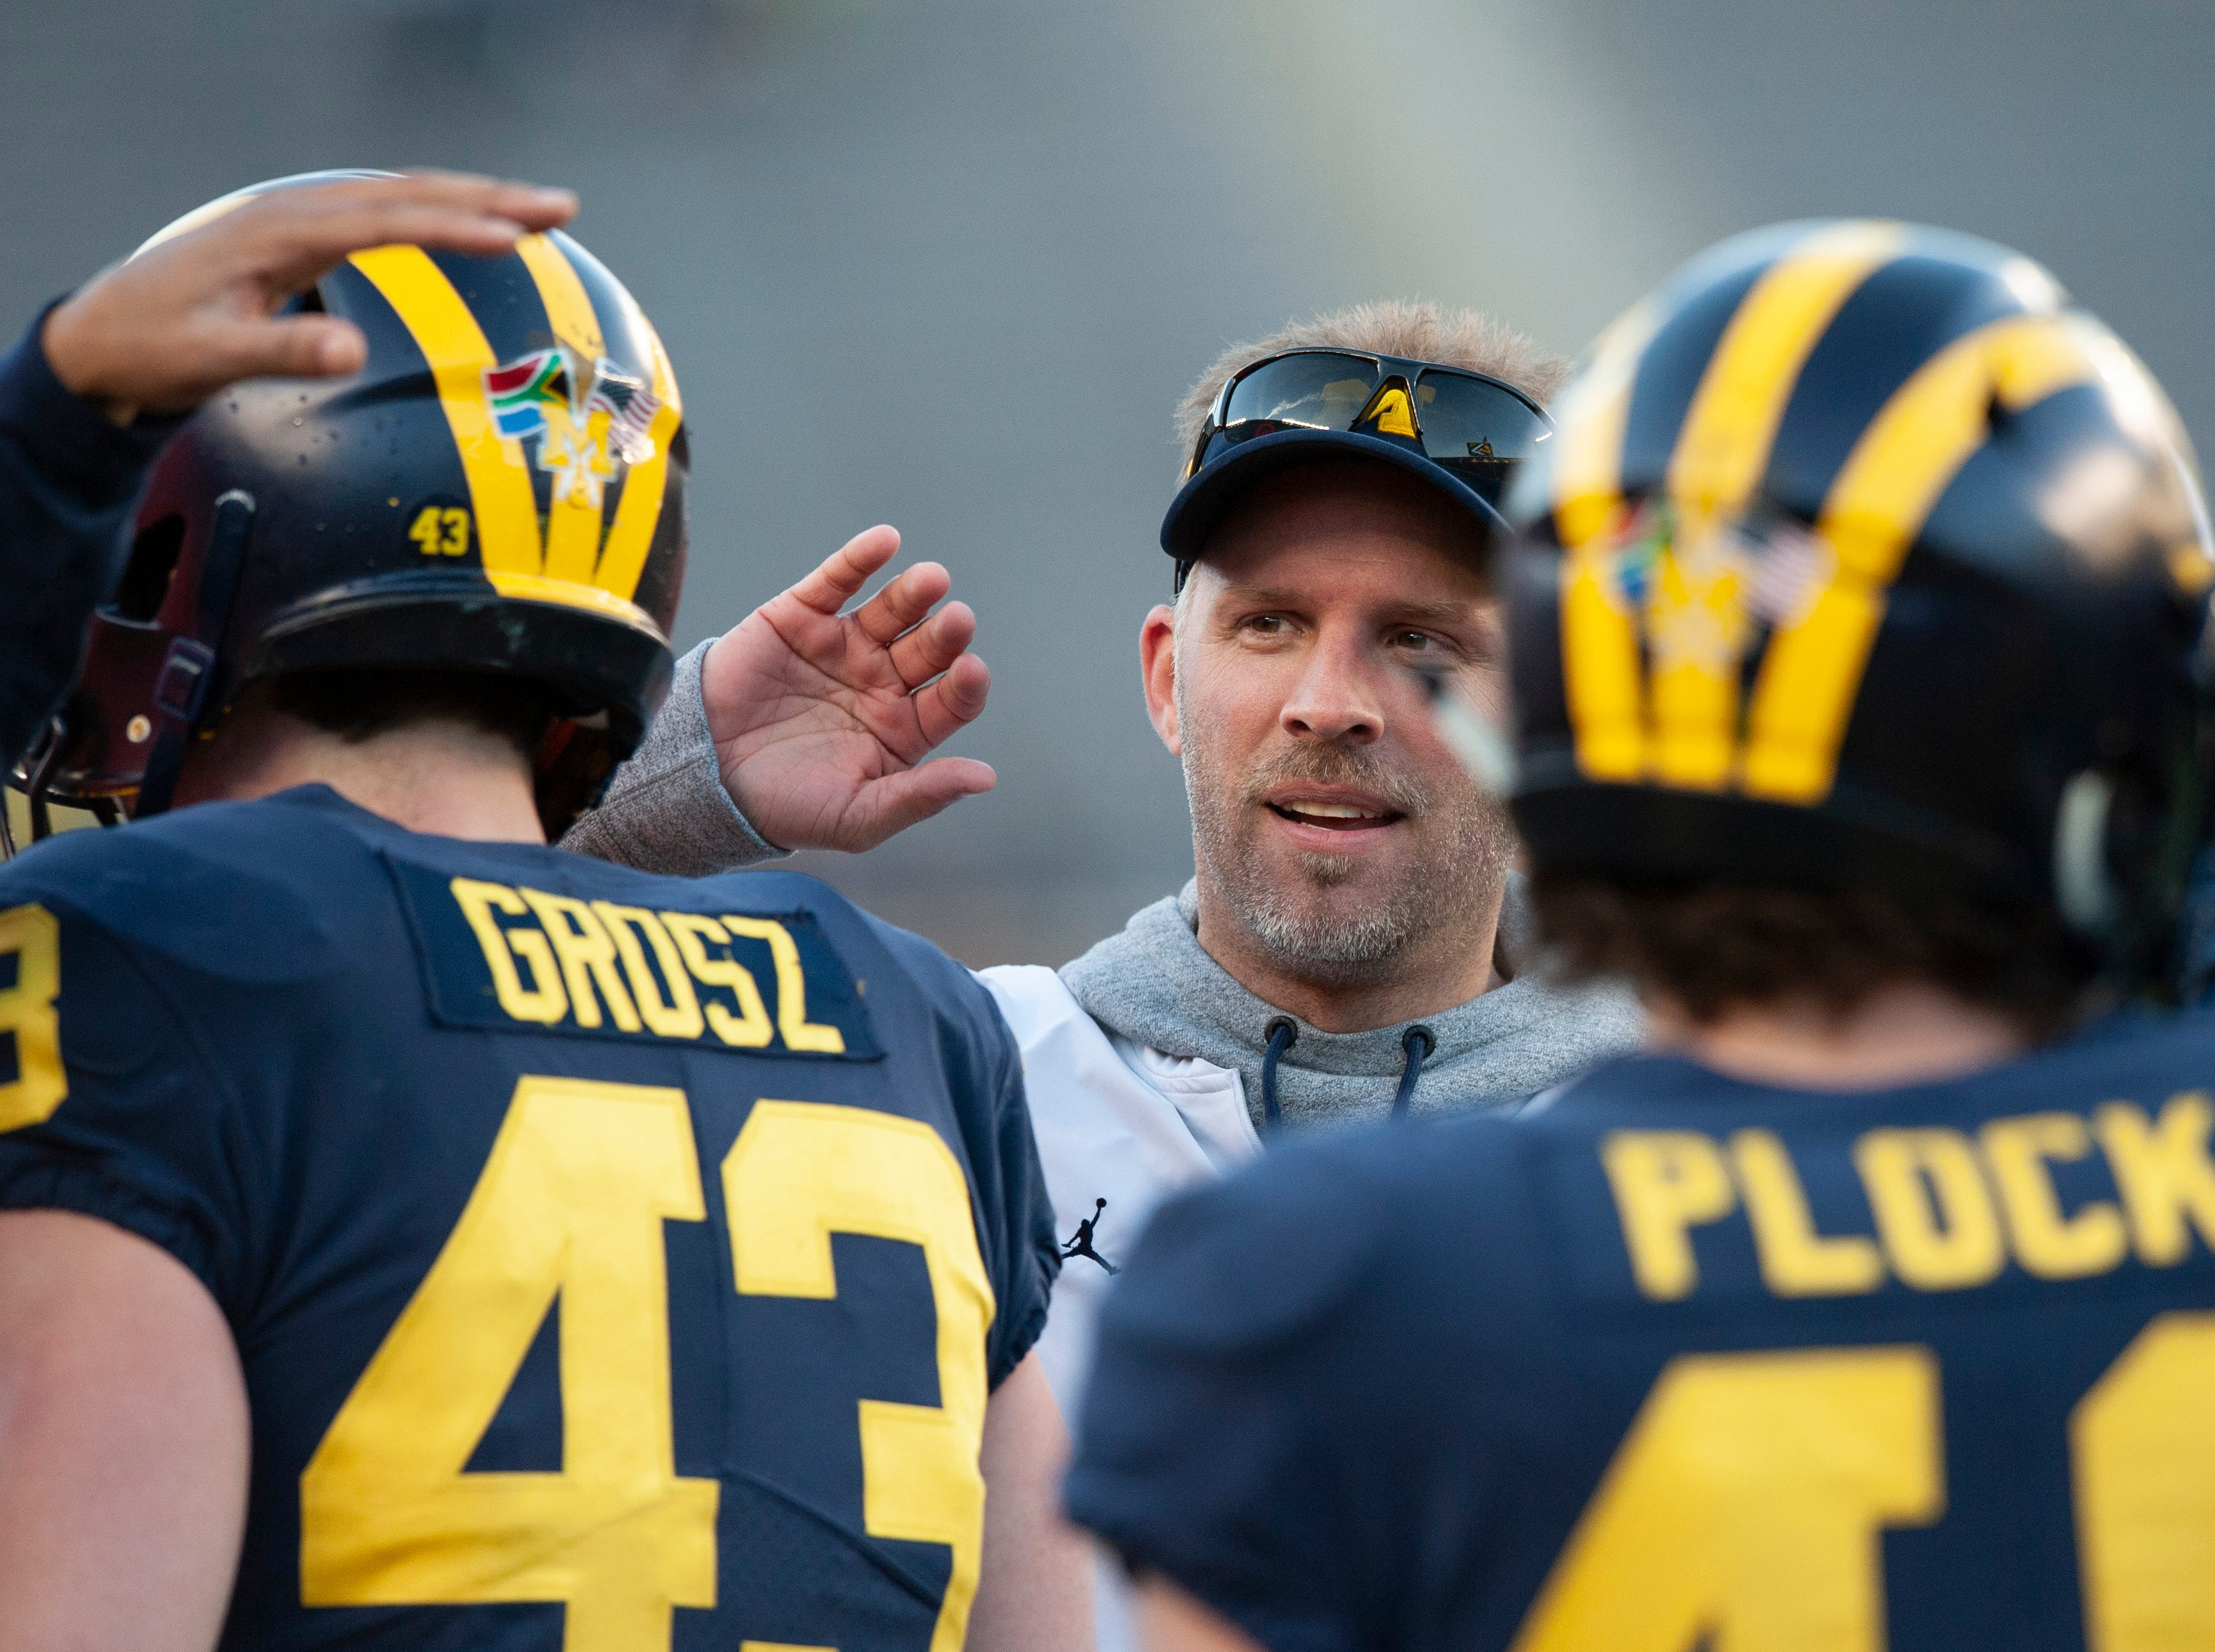 Michigan's new quarterbacks coach Ben McDaniels reacts to a touchdown reception during the scrimmage.